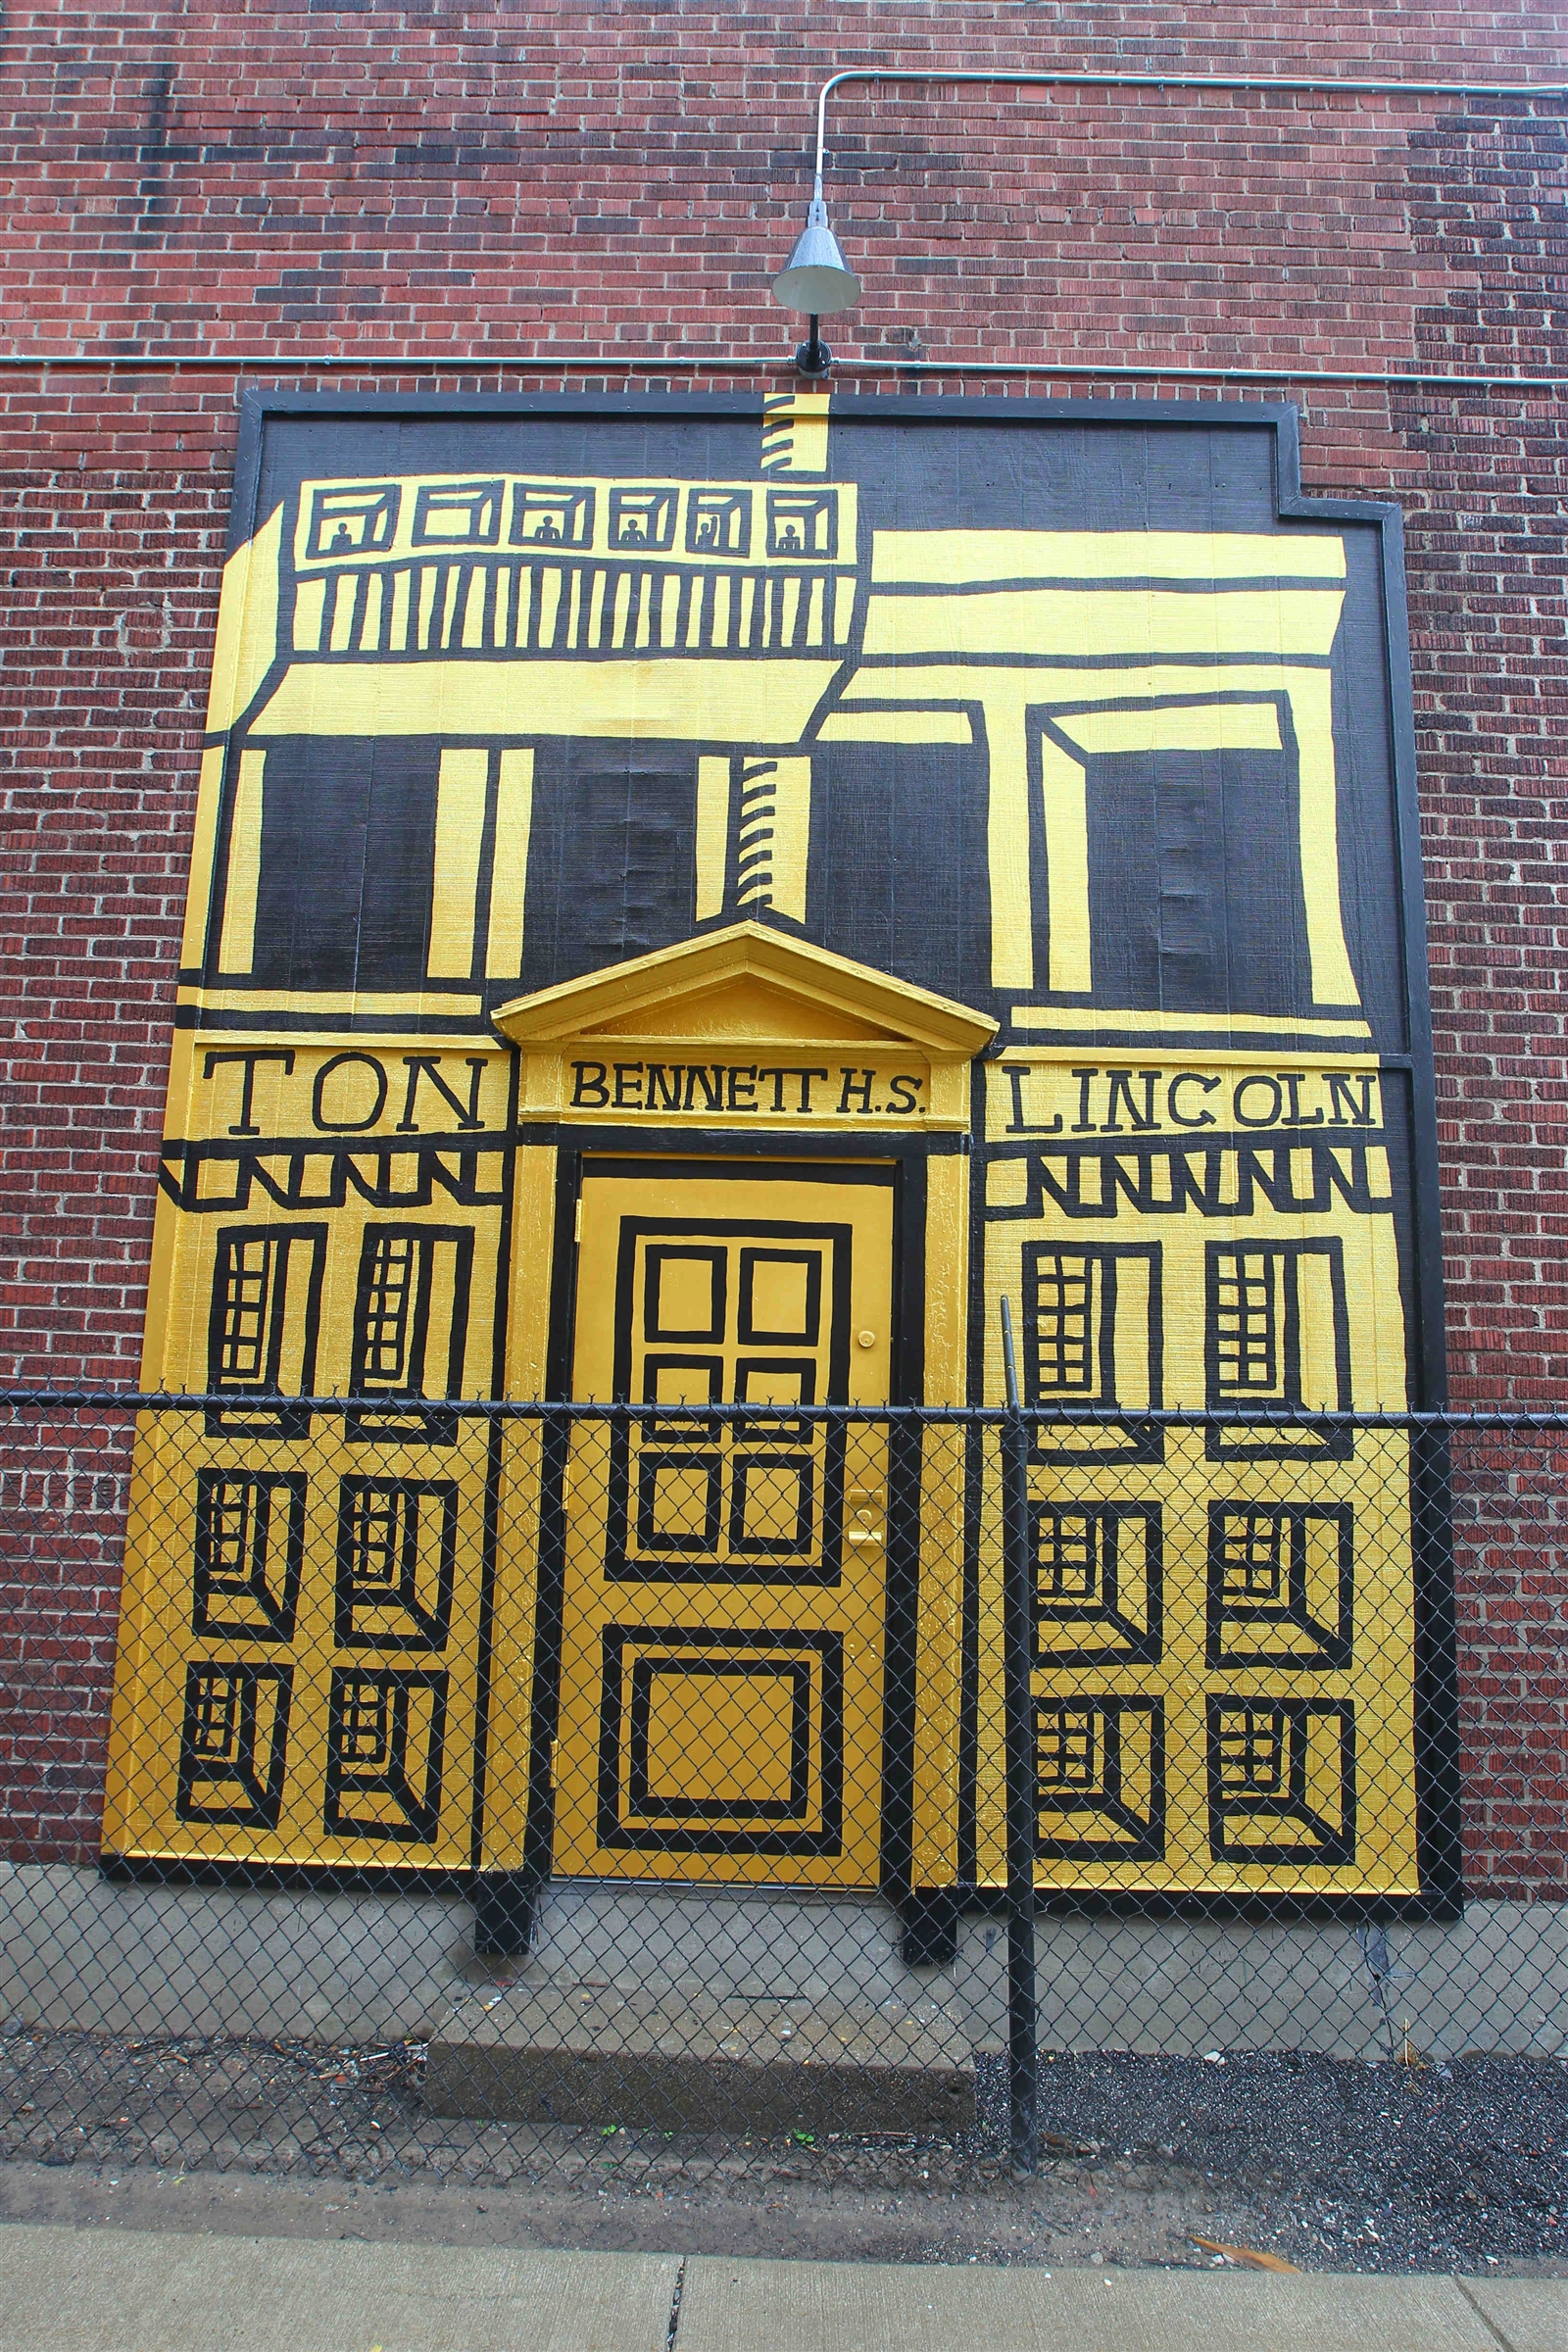 Mural by Buffalo artist Daniel Galas on the side of Koch Metal Spinning, 72 Jewett Ave.